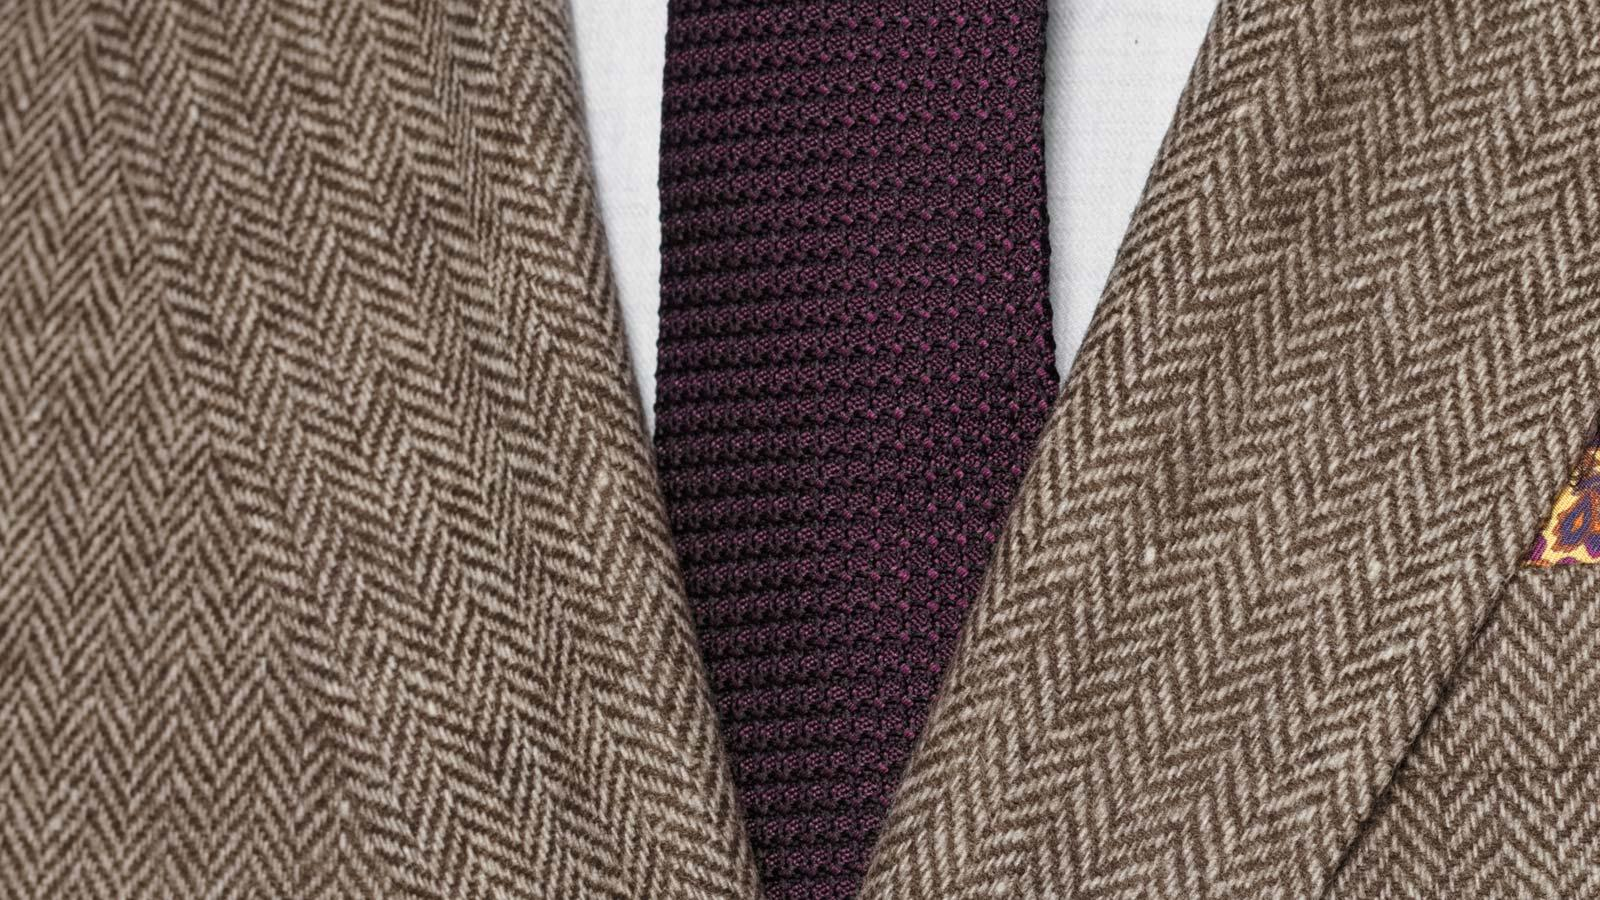 Brown Herringbone Natural Wool Tweed Blazer - slider image 1